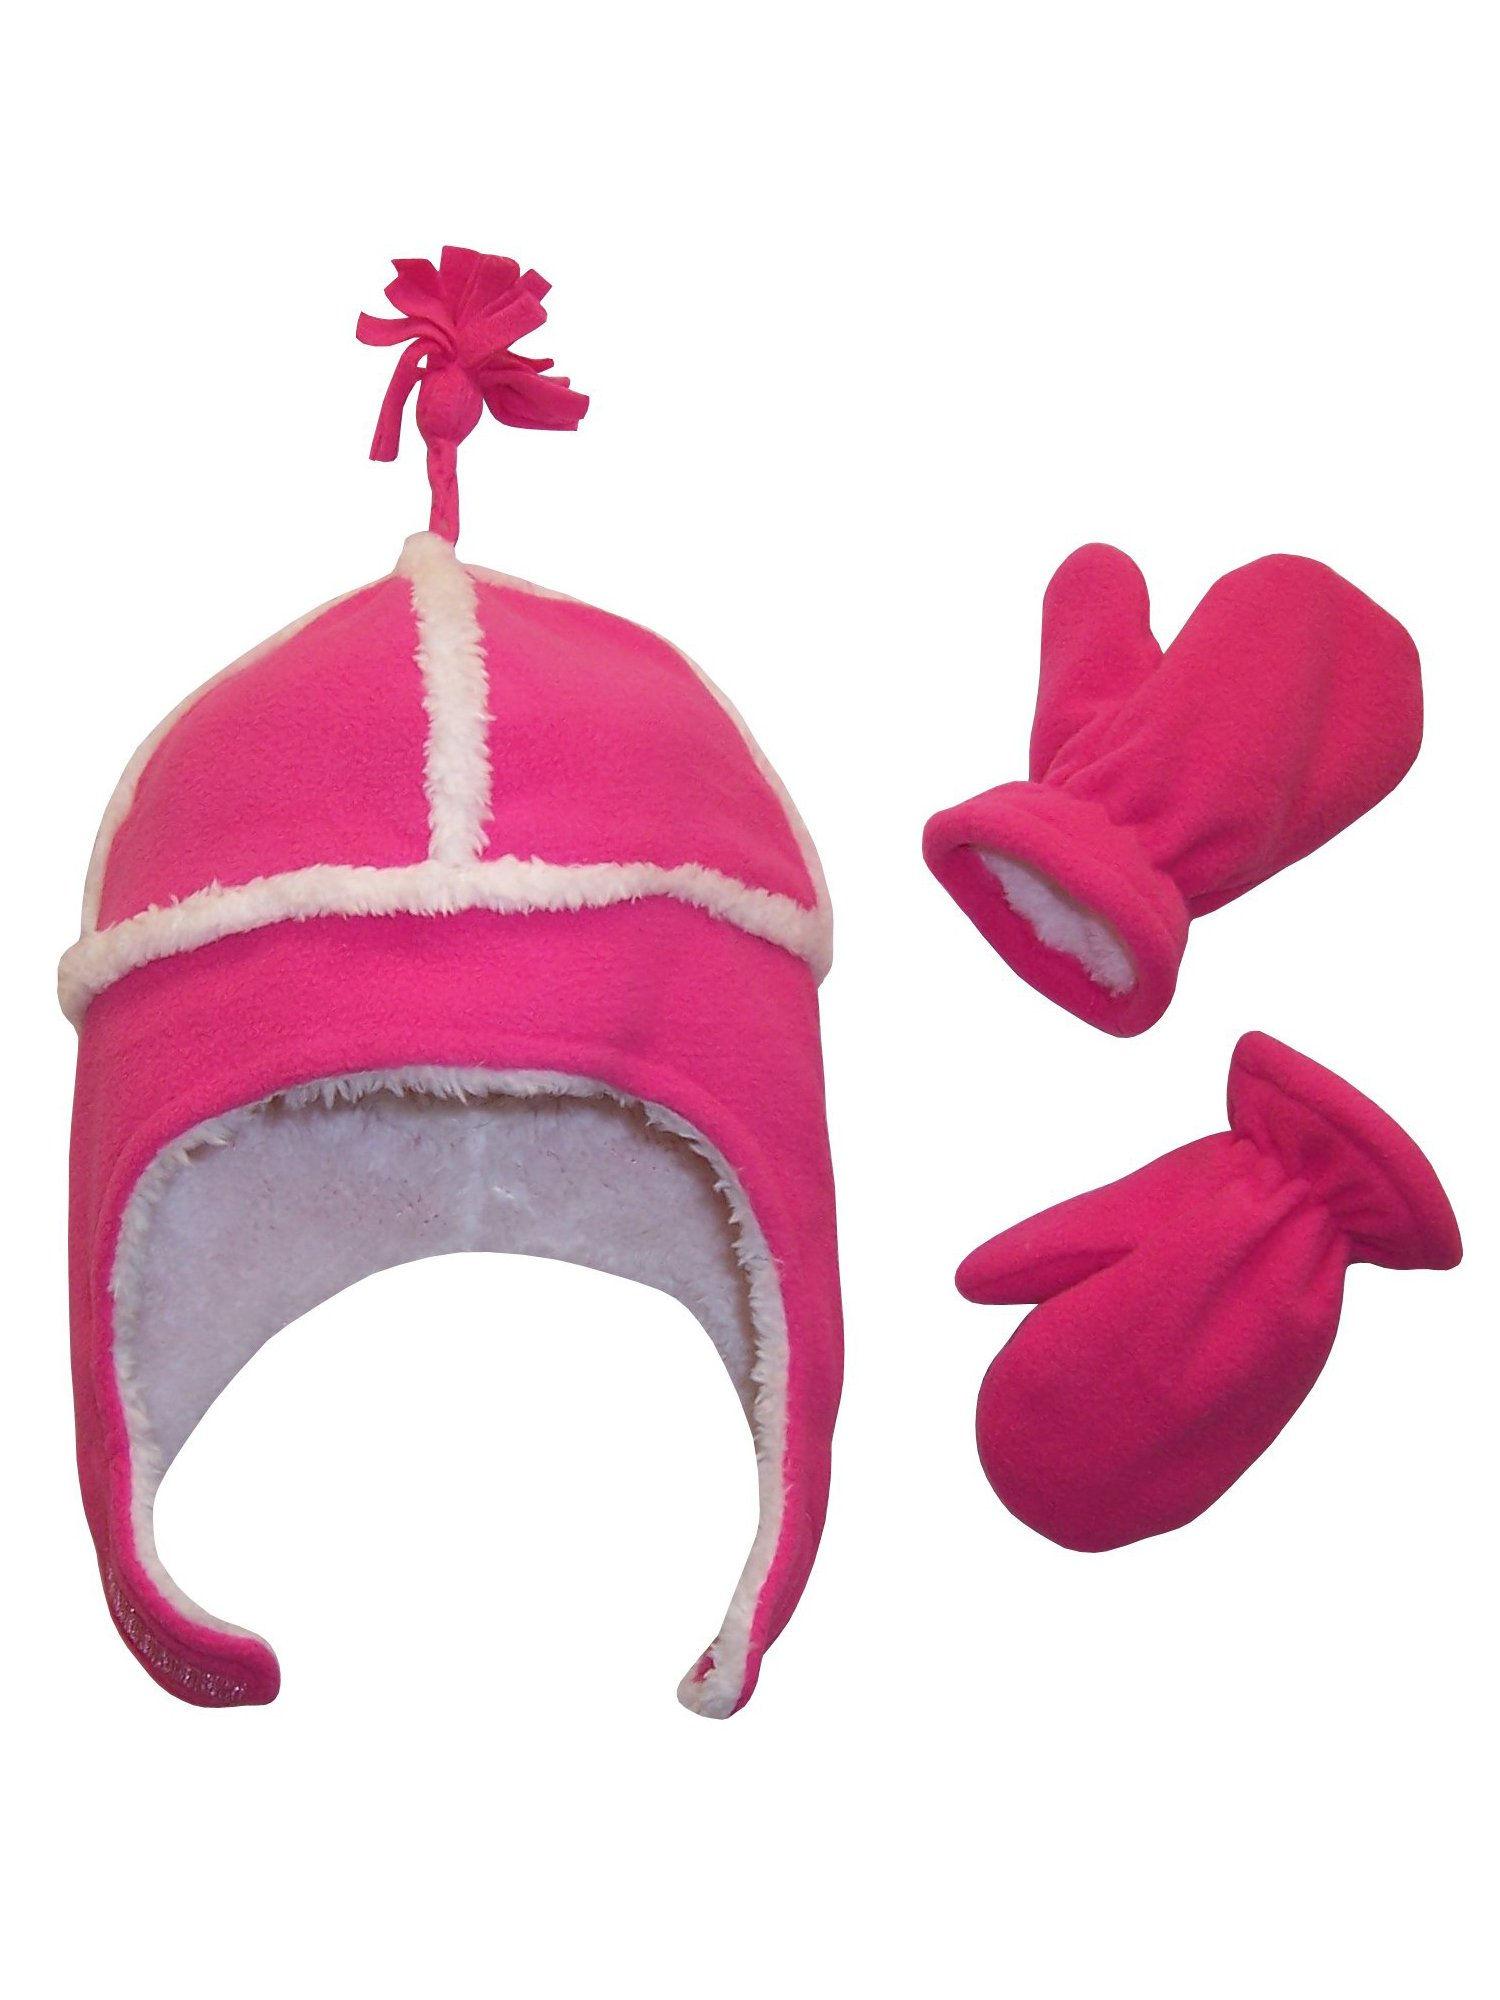 NICE CAPS Little Kids and Toddler Unisex Warm Sherpa Lined Micro Fleece Hat And Mitten Cold Weather Winter Snow Headwear Accessory Set - Fits Boys and Girls Children Sizes